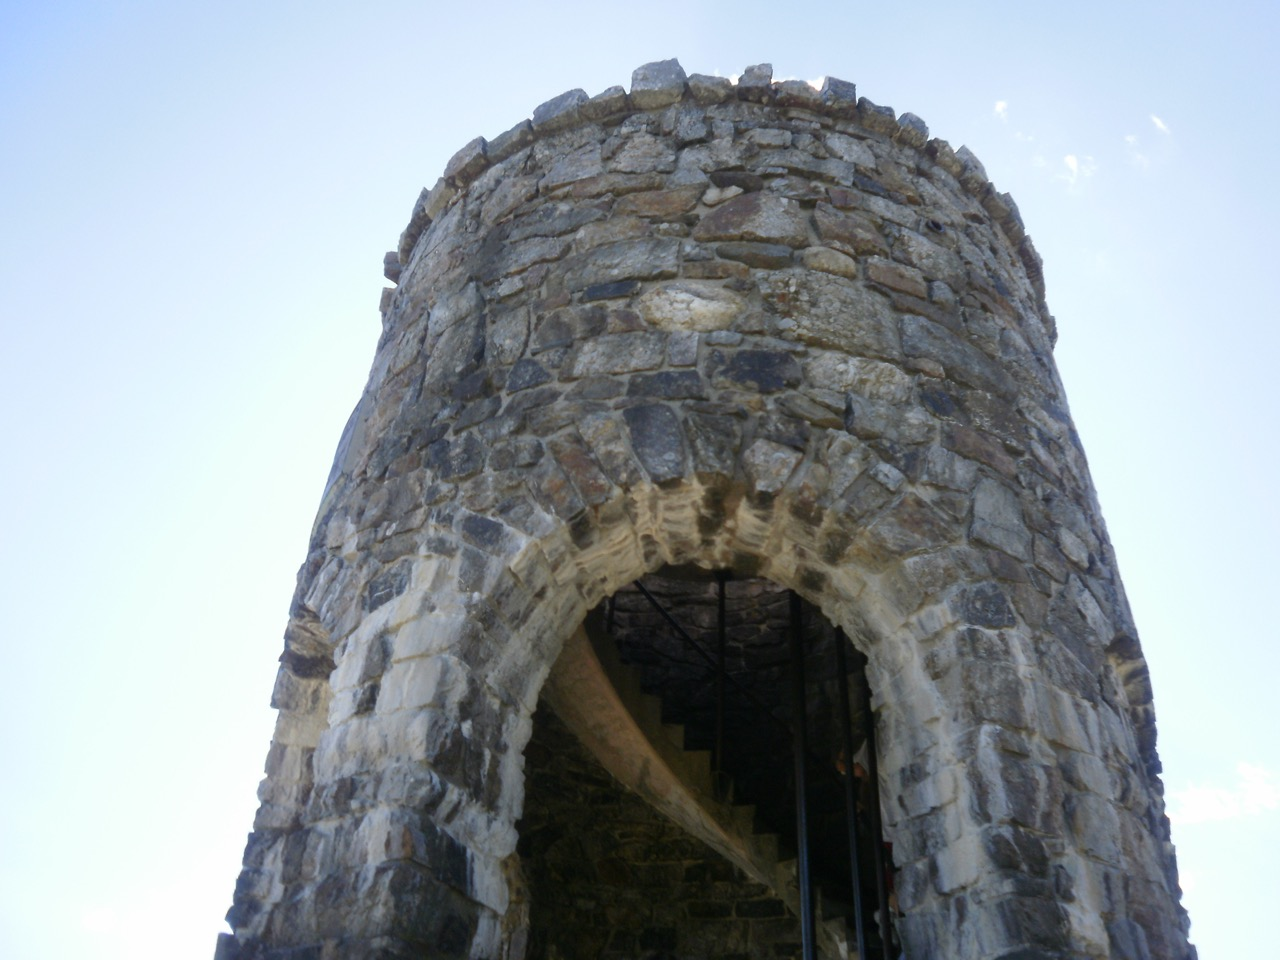 Structure atop Mount Battie, which visitors can climb.